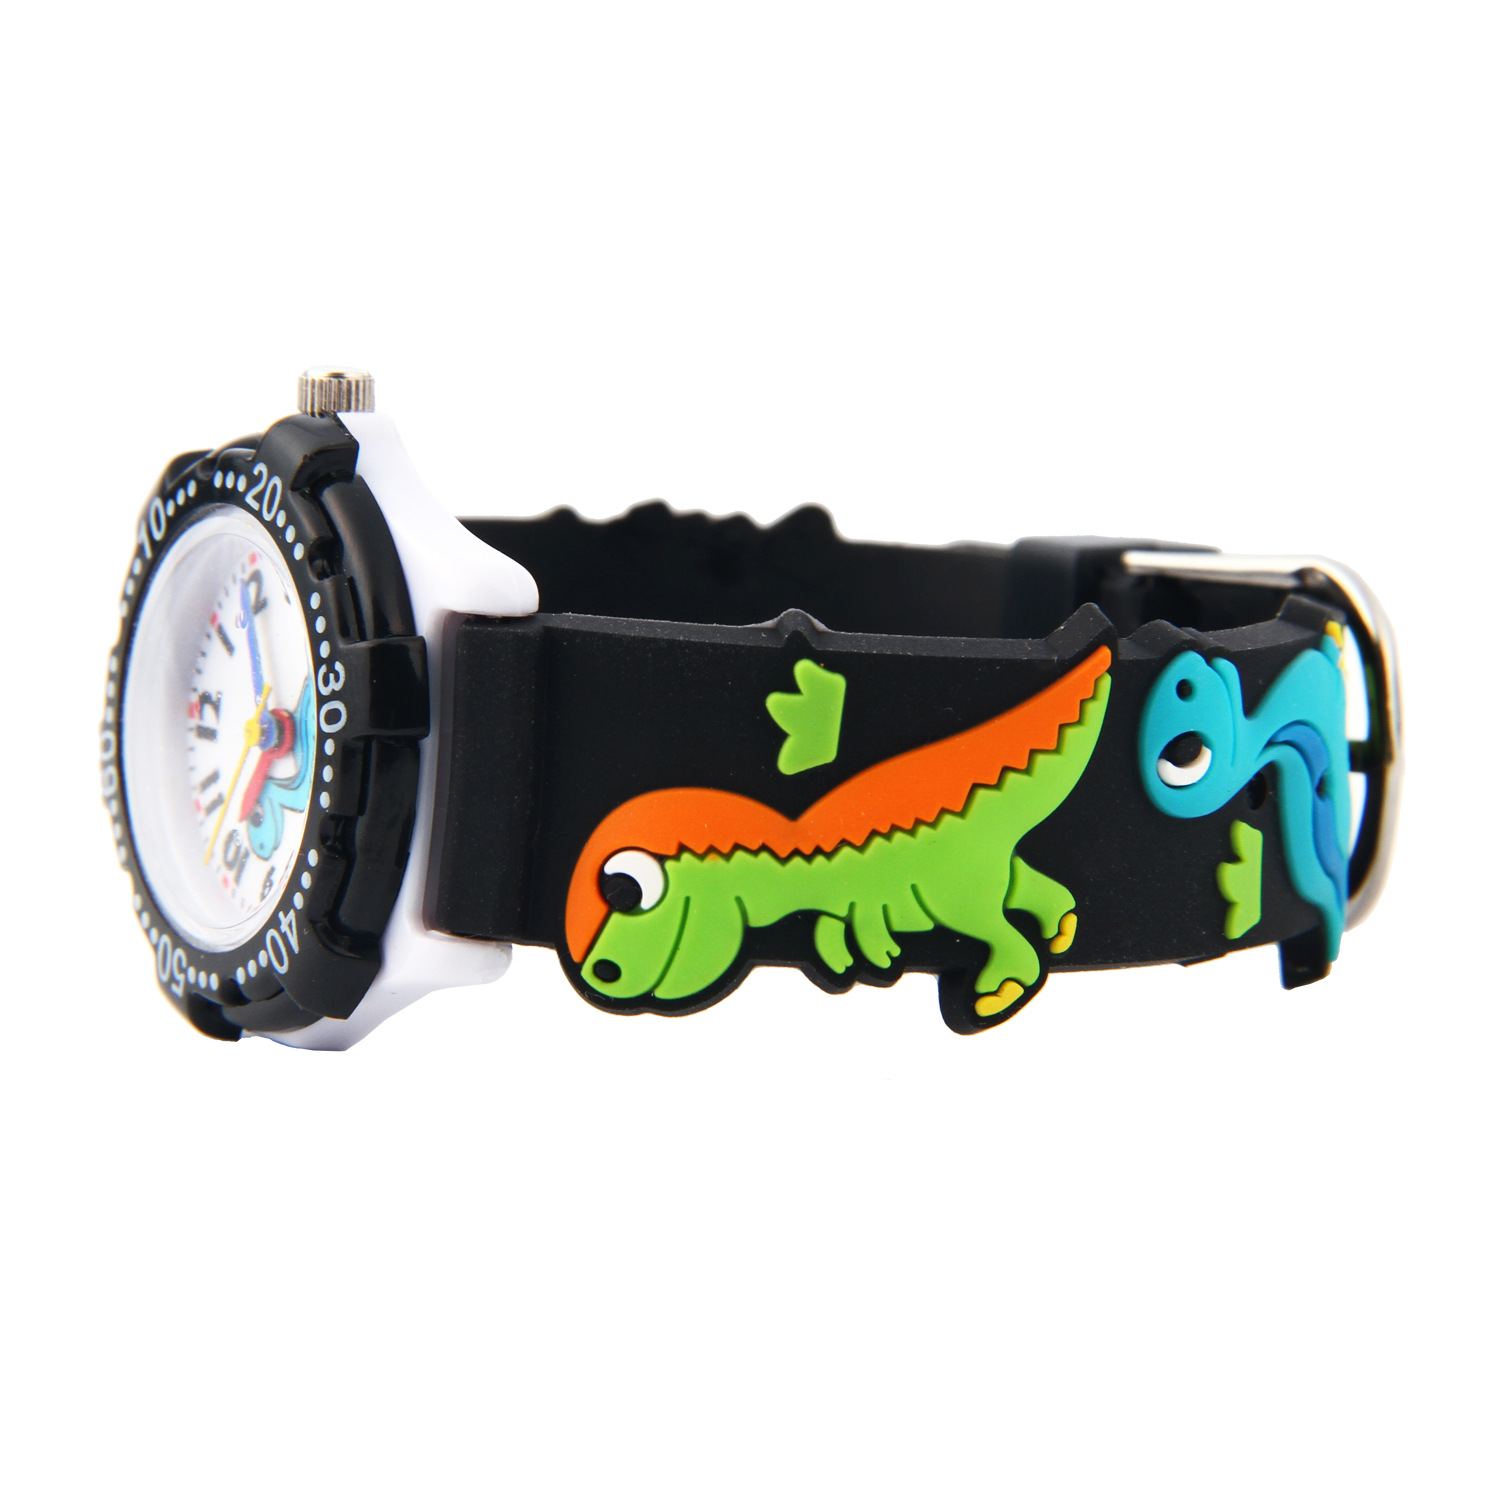 Wholesale 100pcs Lot Colorful Children Quartz Watch Dragon 3D Pattern Wonderful Gift For Boy Or Girl